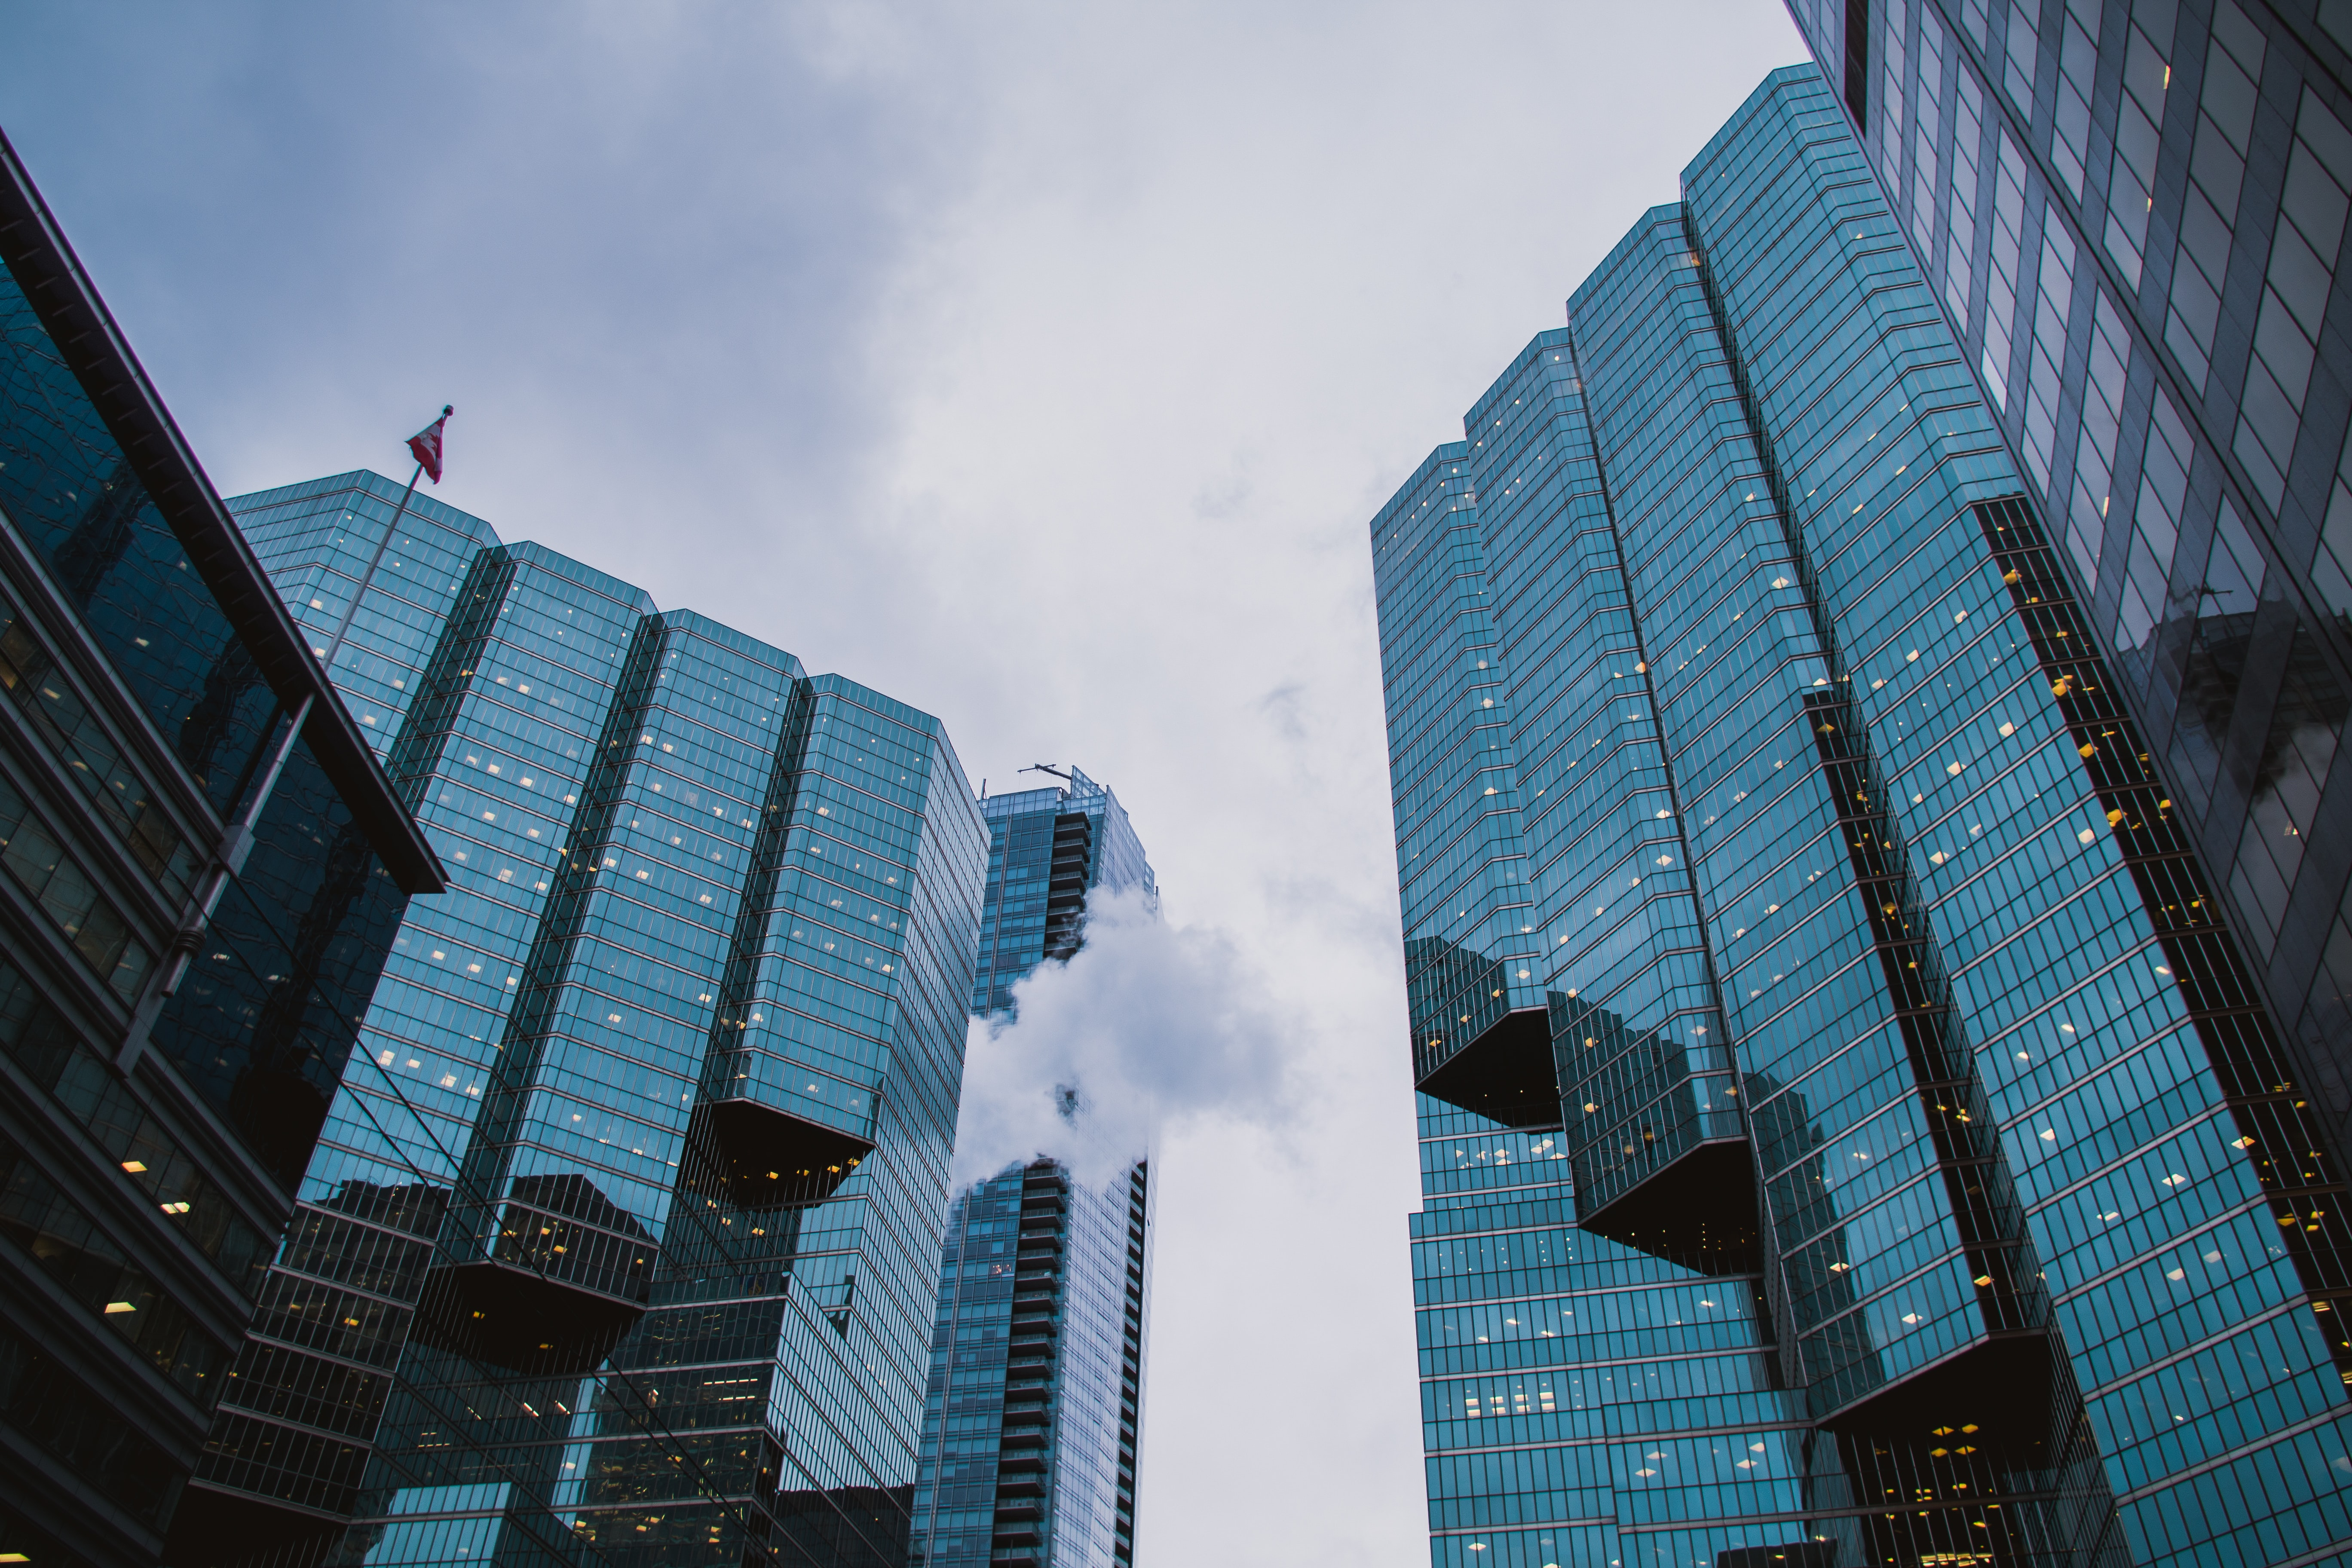 Wide glass facades of modern office buildings in Toronto